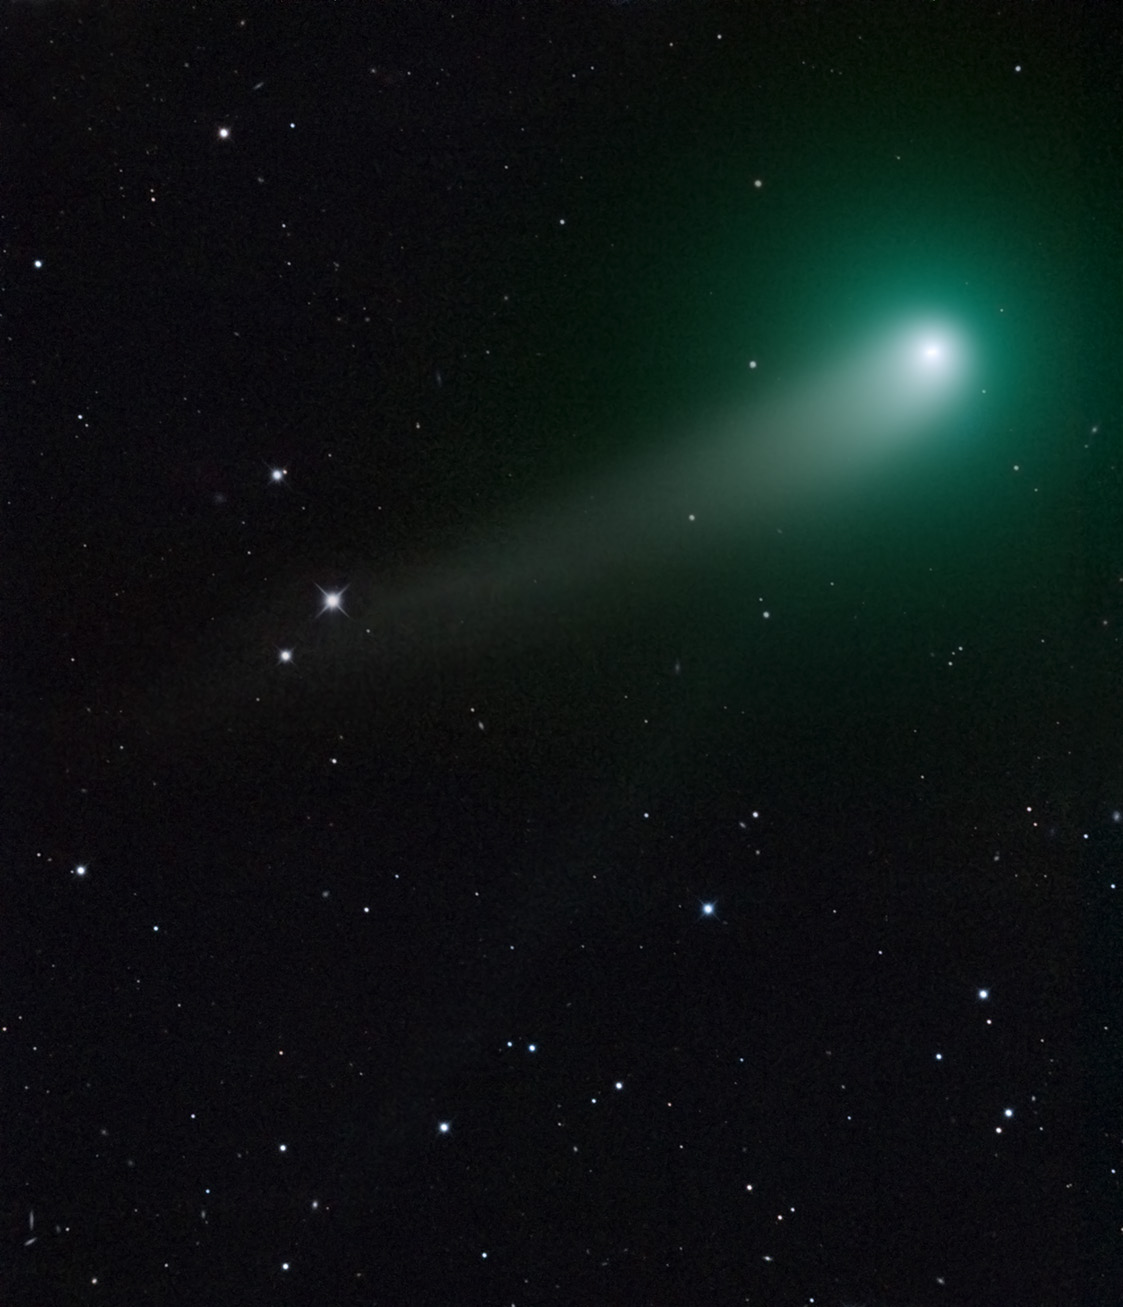 Springtime Comet Wows Stargazer in Amazing Telescope View (Photo)